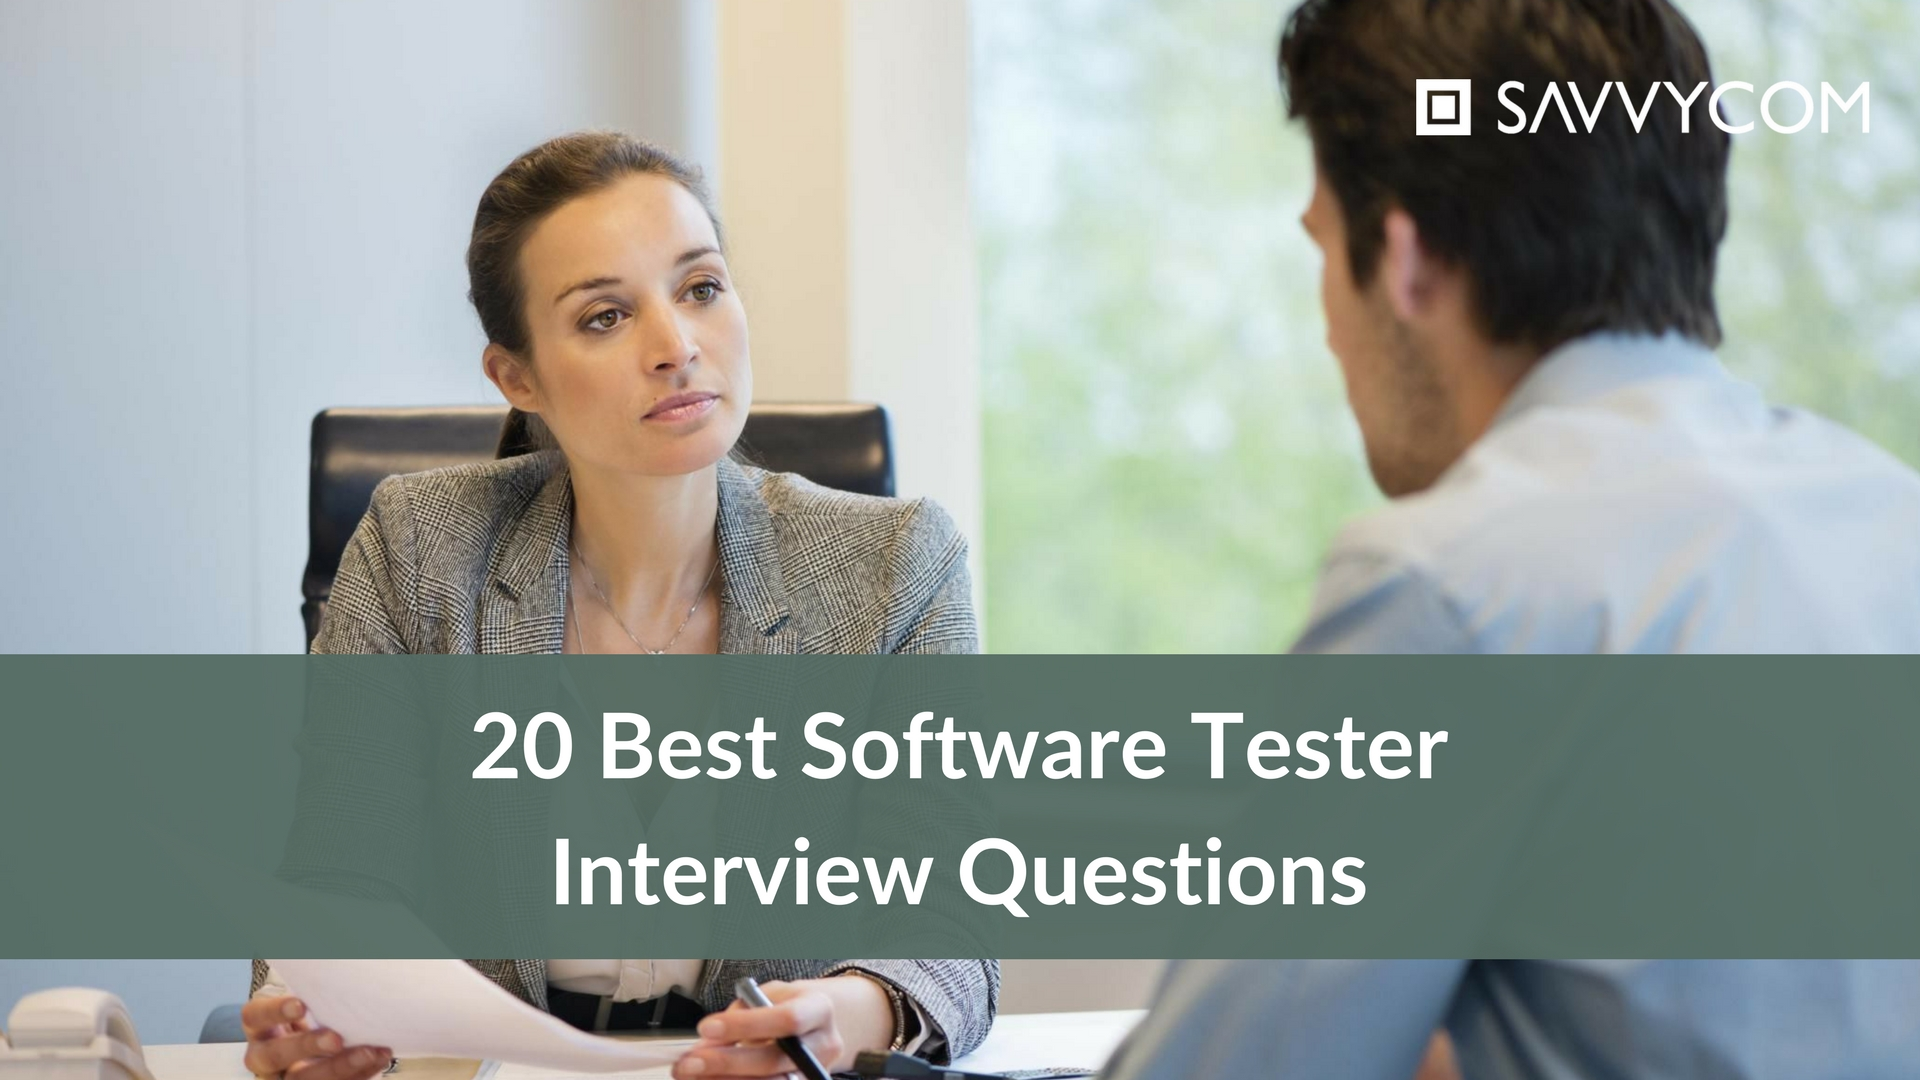 20 Best Software Testing Interview Questions with Answers